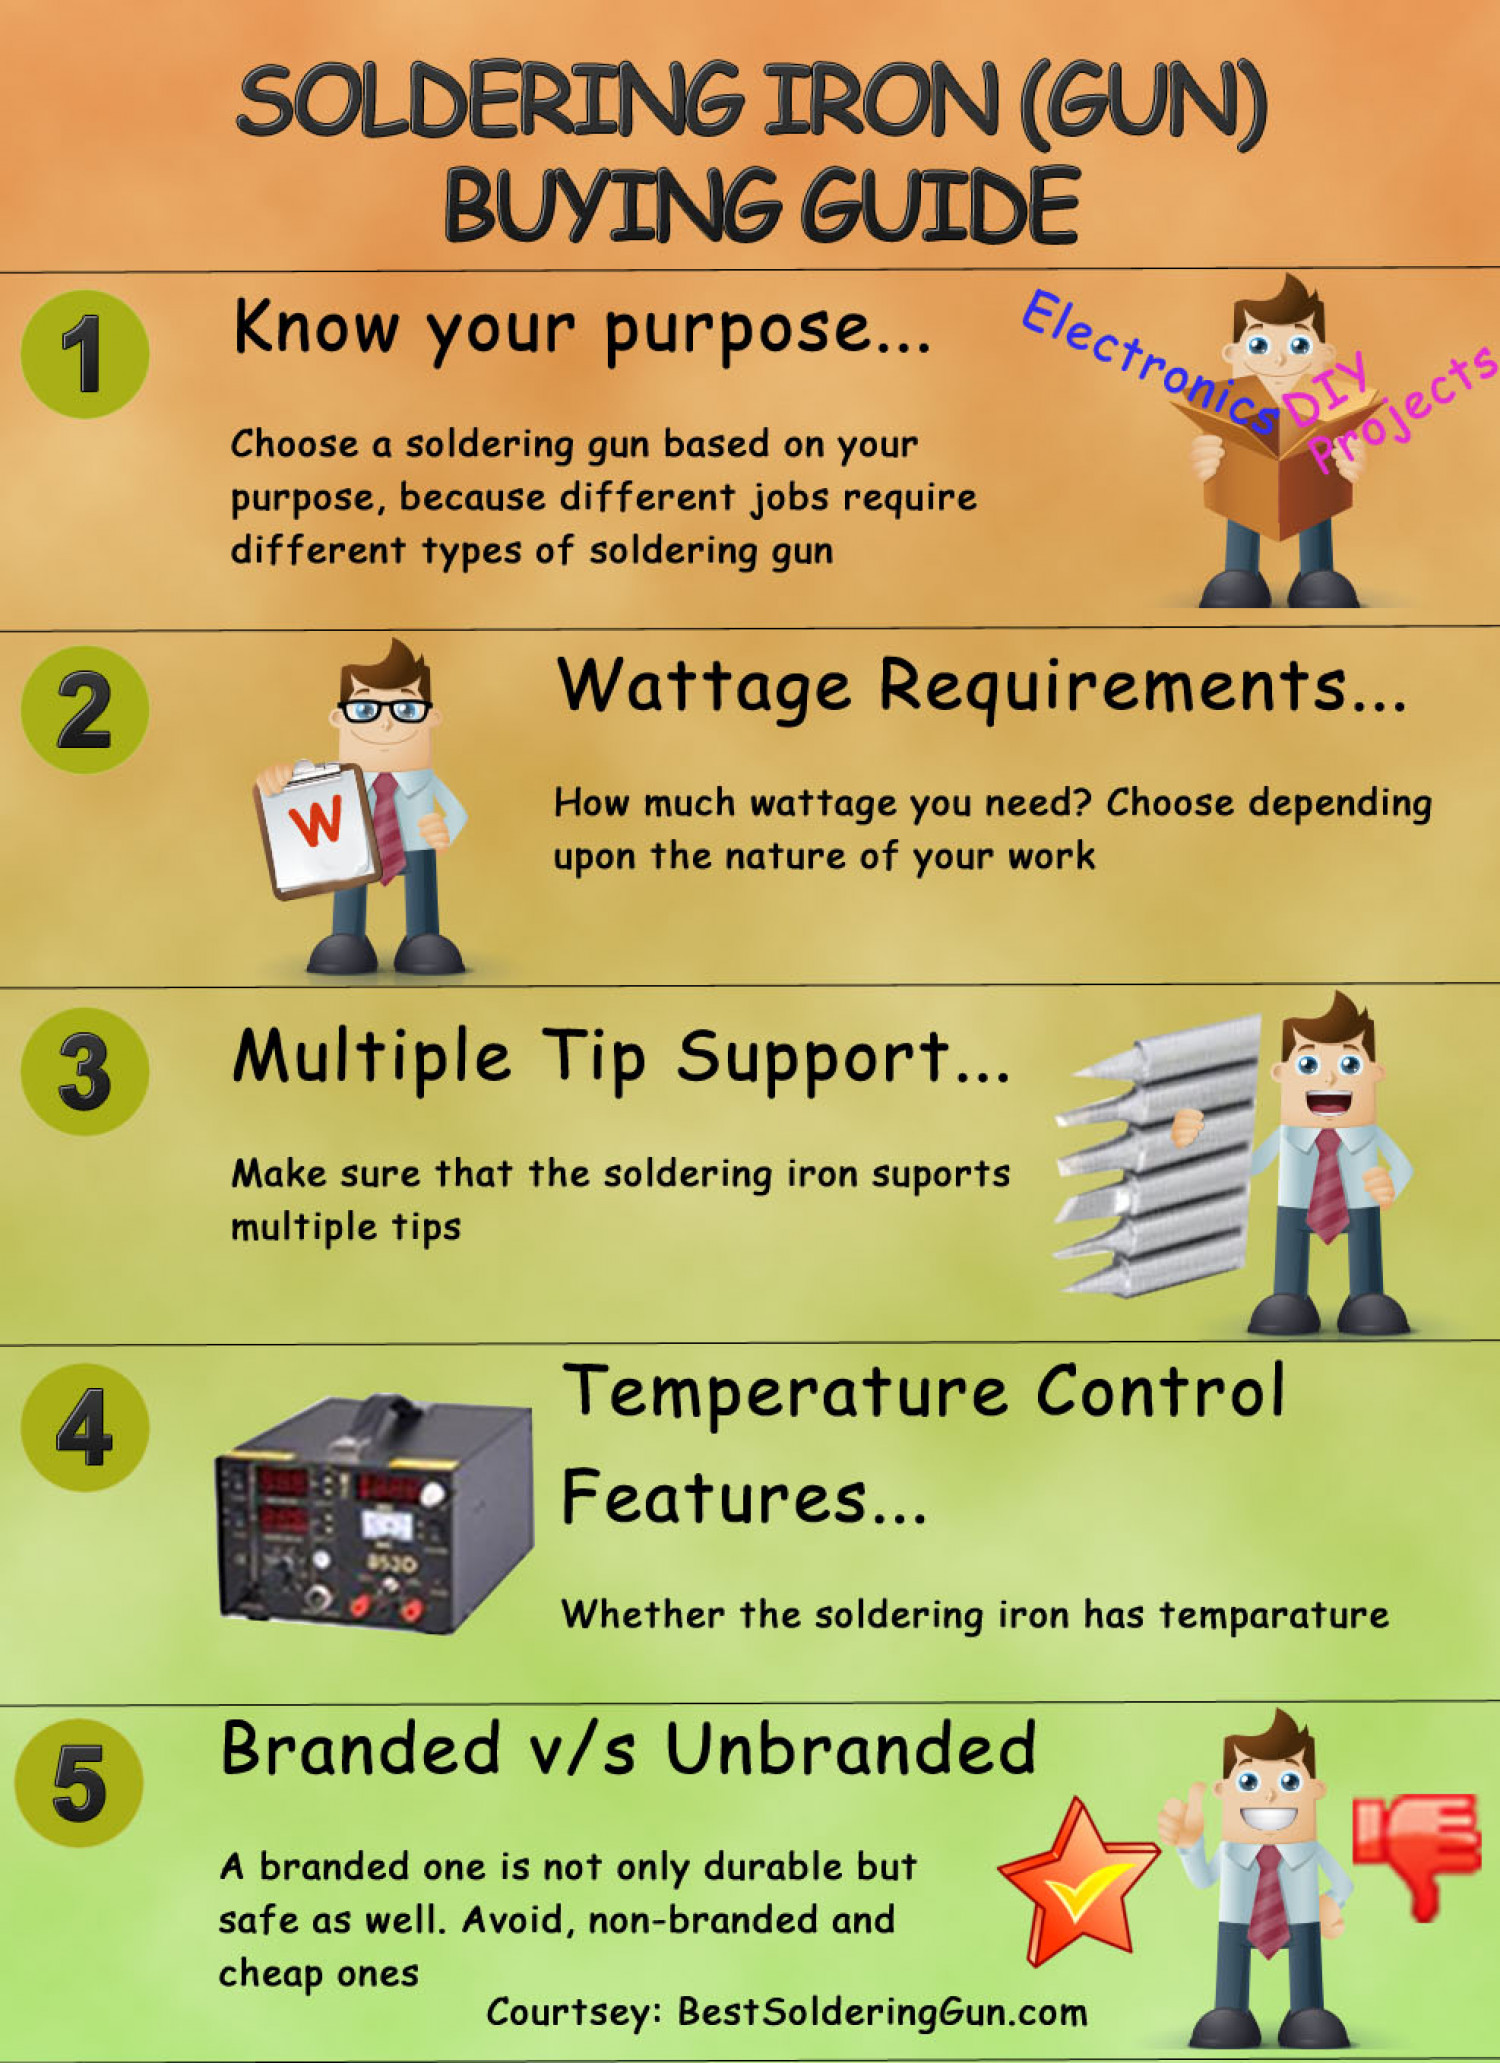 Soldering Iron/Gun Buying Guide Infographic